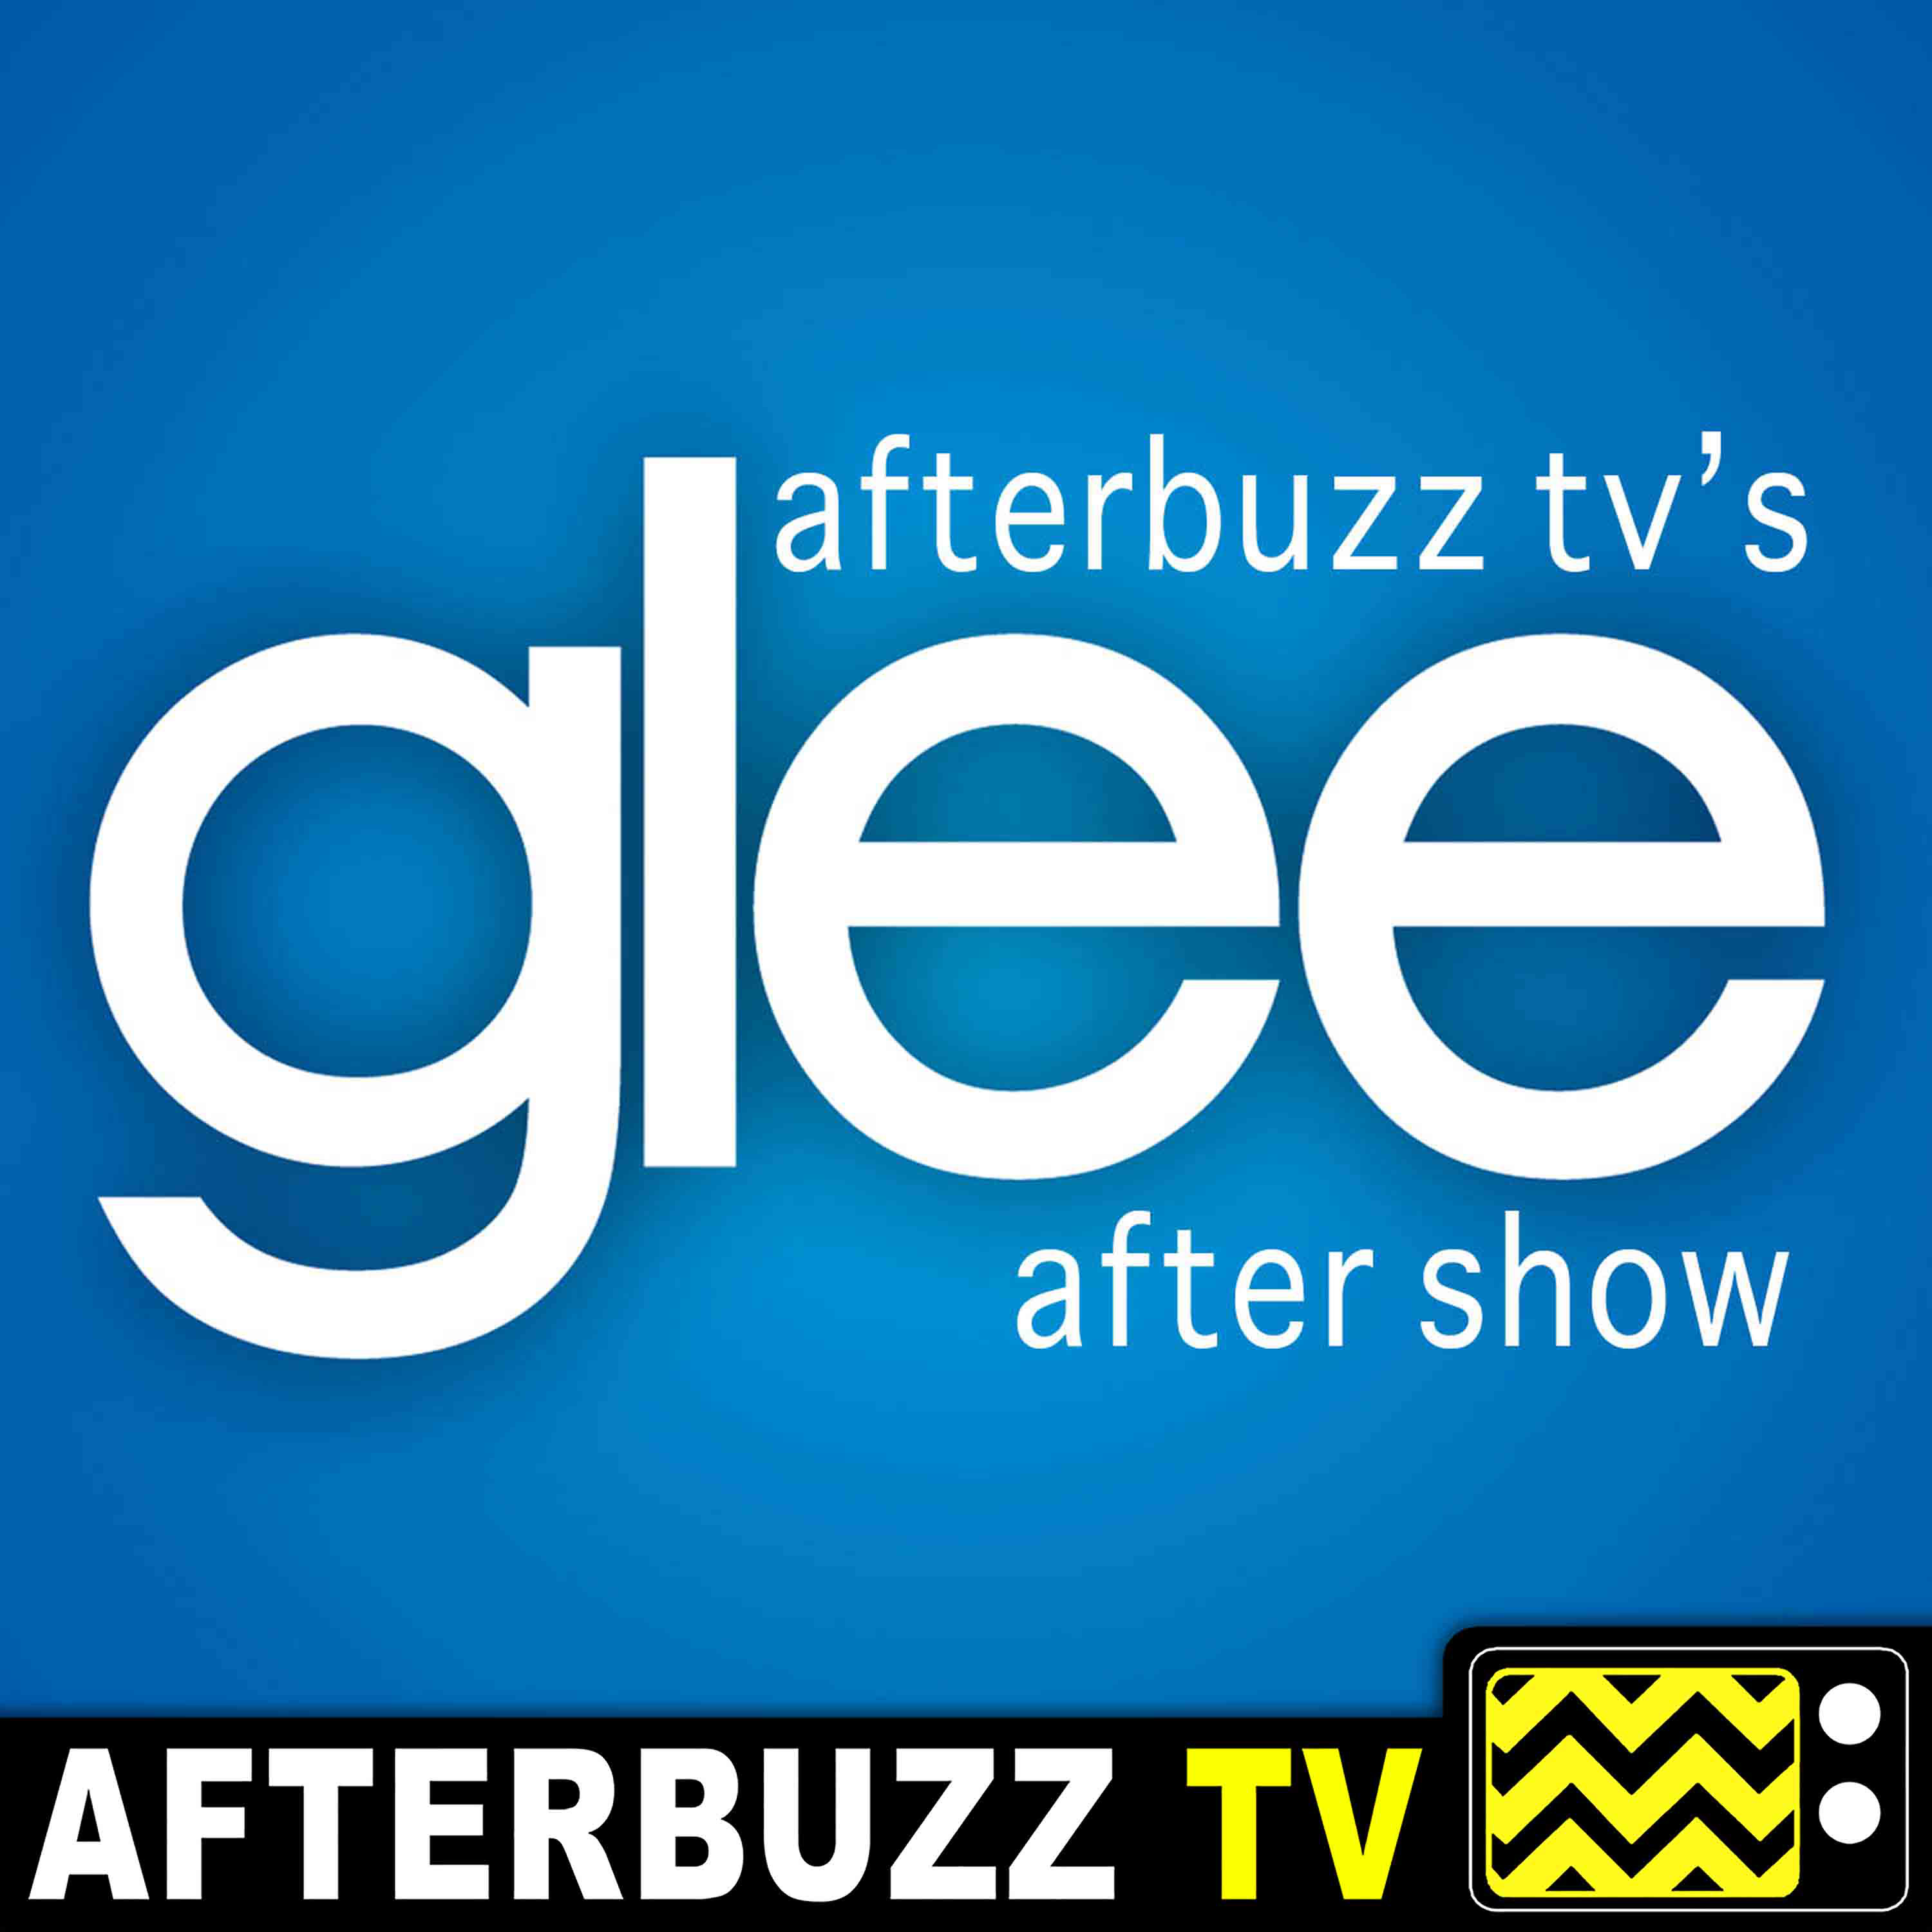 Glee Reviews and After Show - AfterBuzz TV by AfterBuzz TV on Apple Podcasts